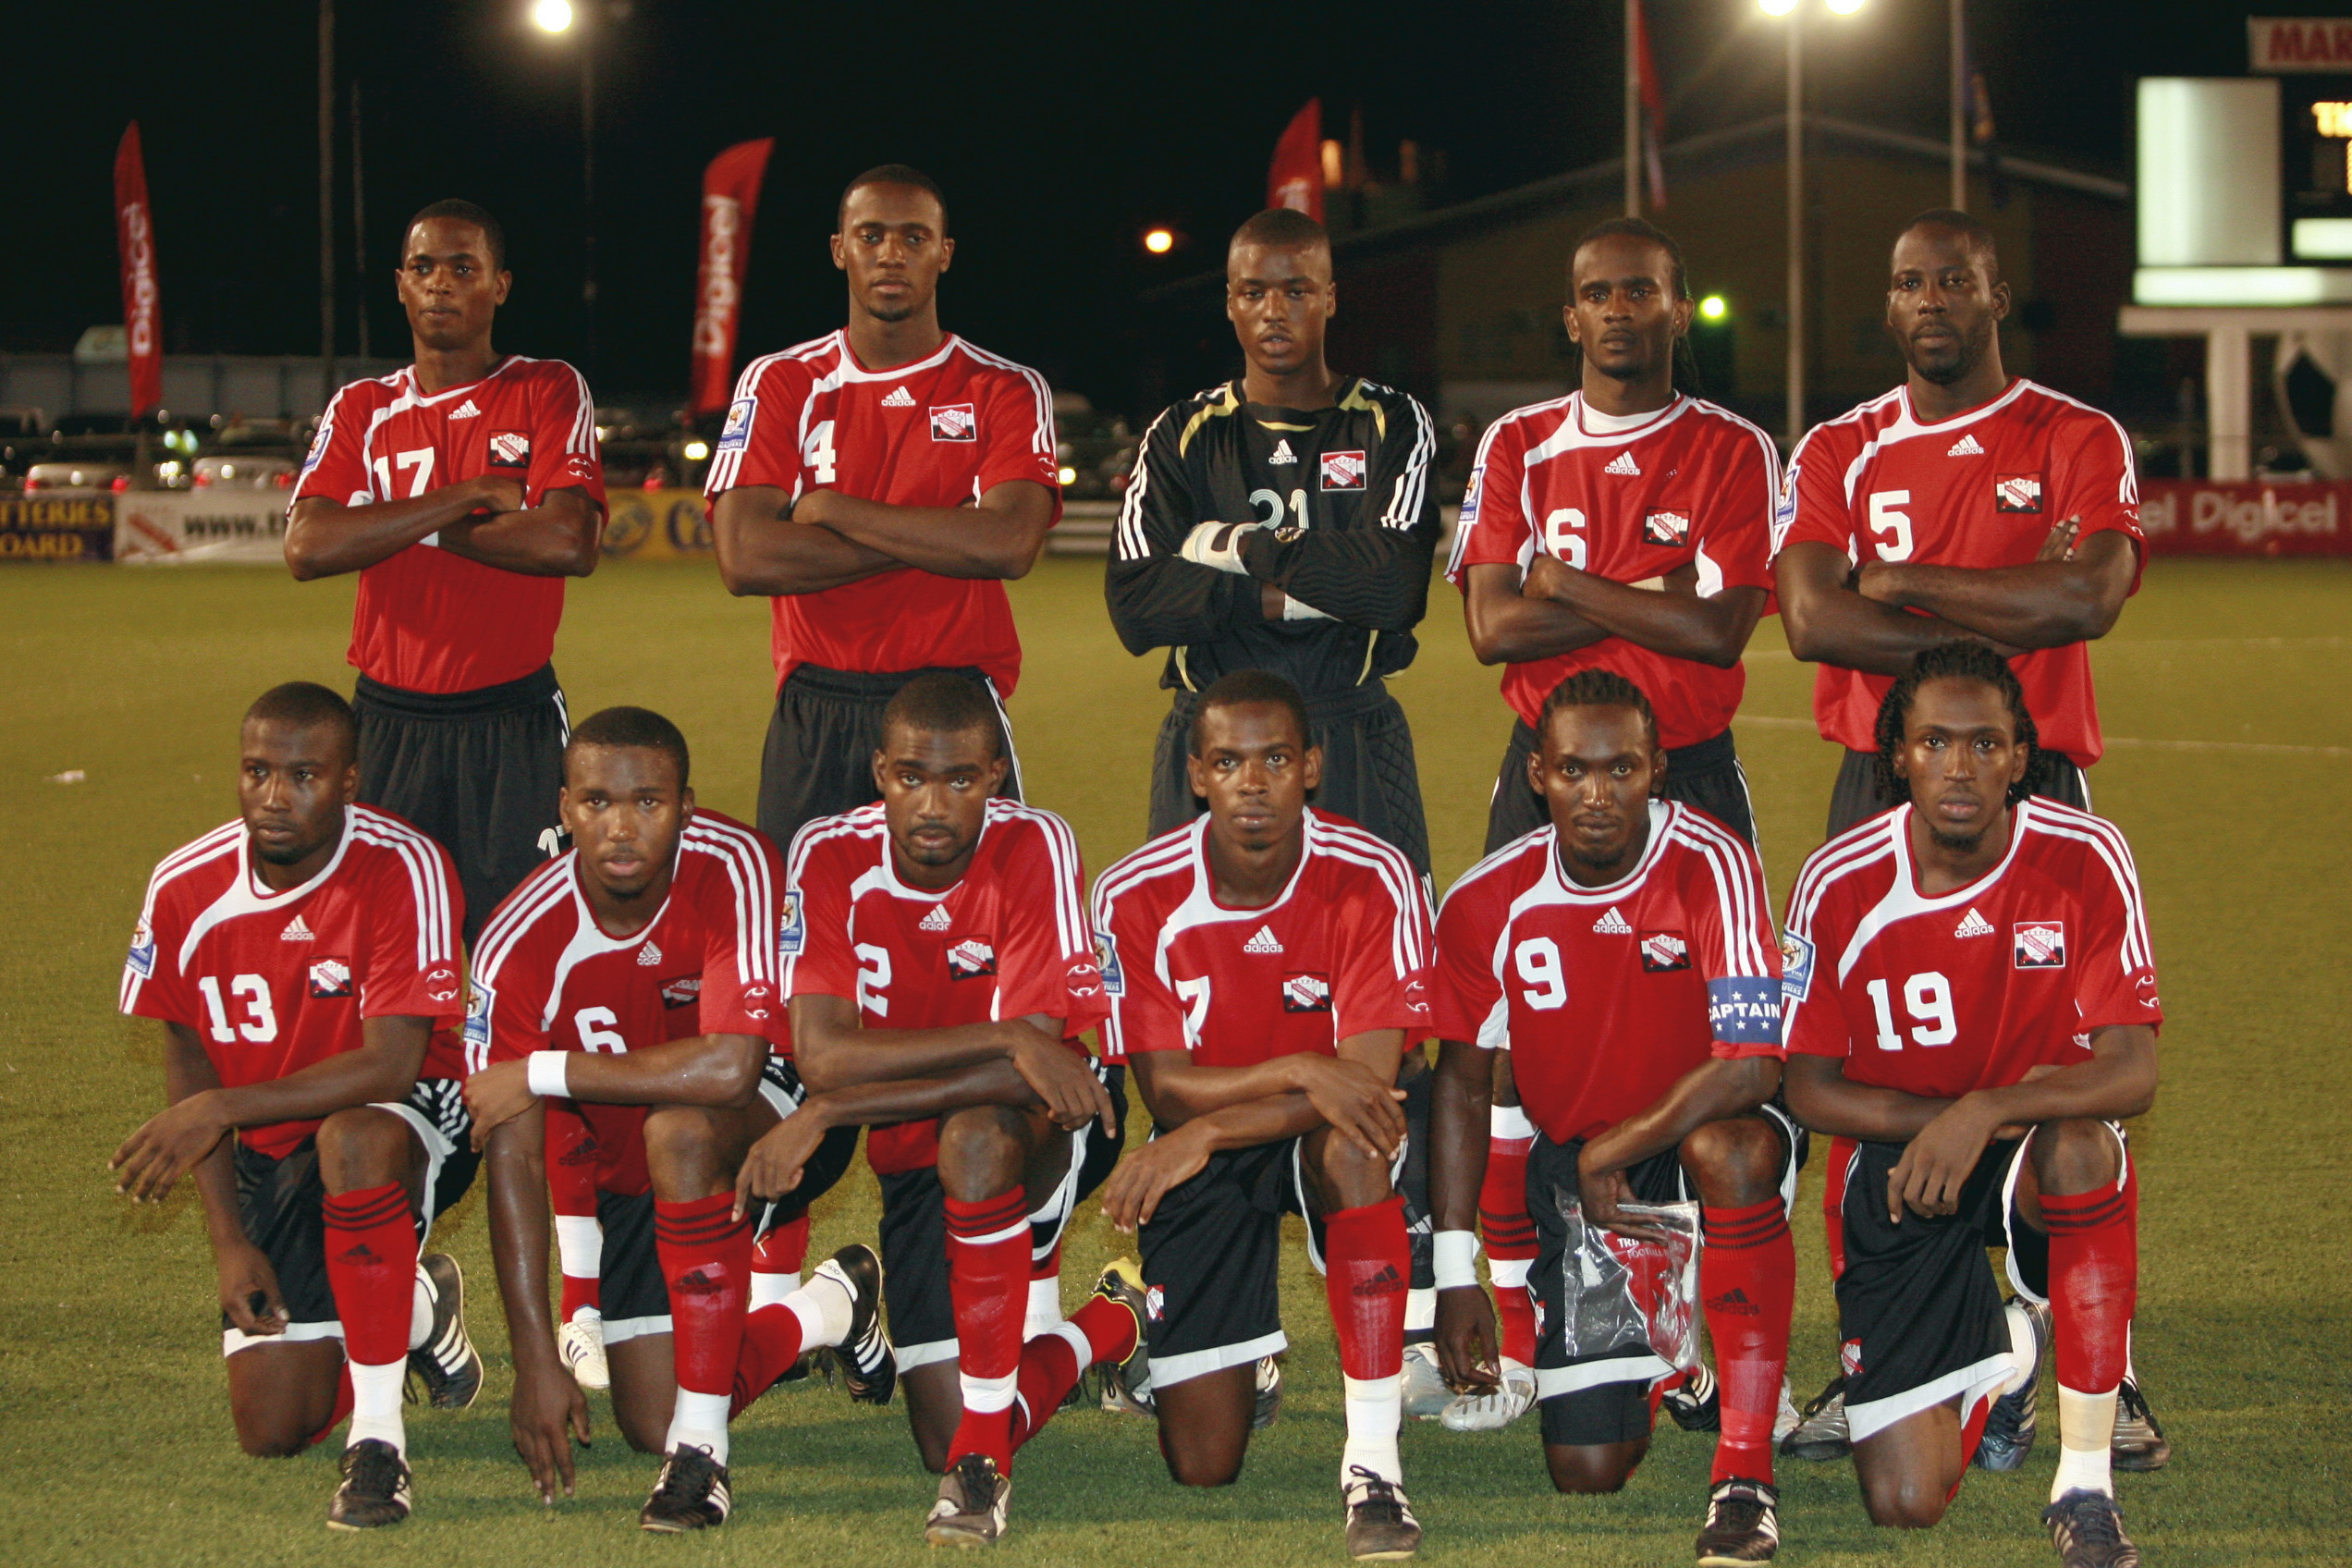 T&T Team line up vs Antigua (Photo: Digicelfotball.com).